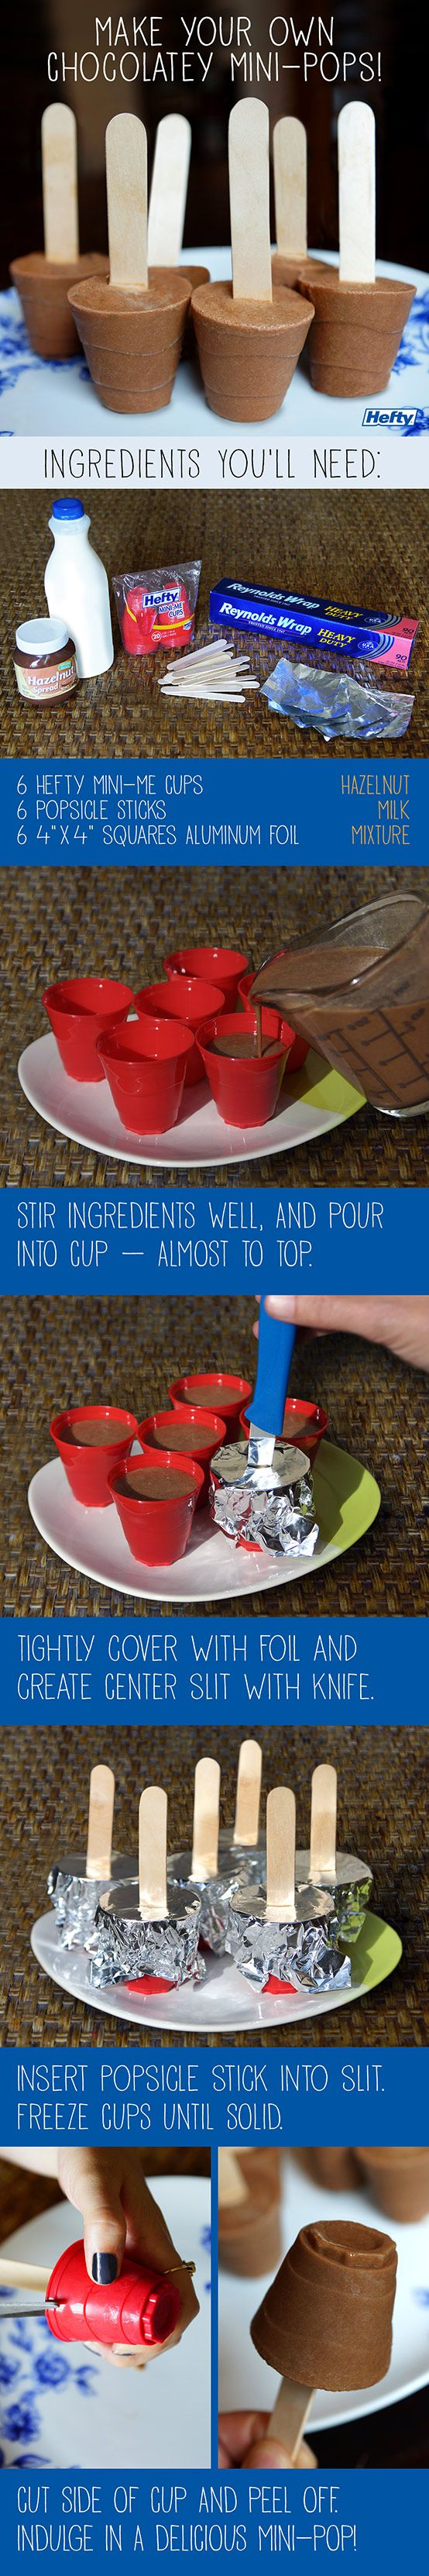 Make your own Chocolaty Mini-Pops – all you need for easy homemade ice pops are Hefty® Mini-Me Cups, Reynolds® Aluminum Foil and wood sticks!